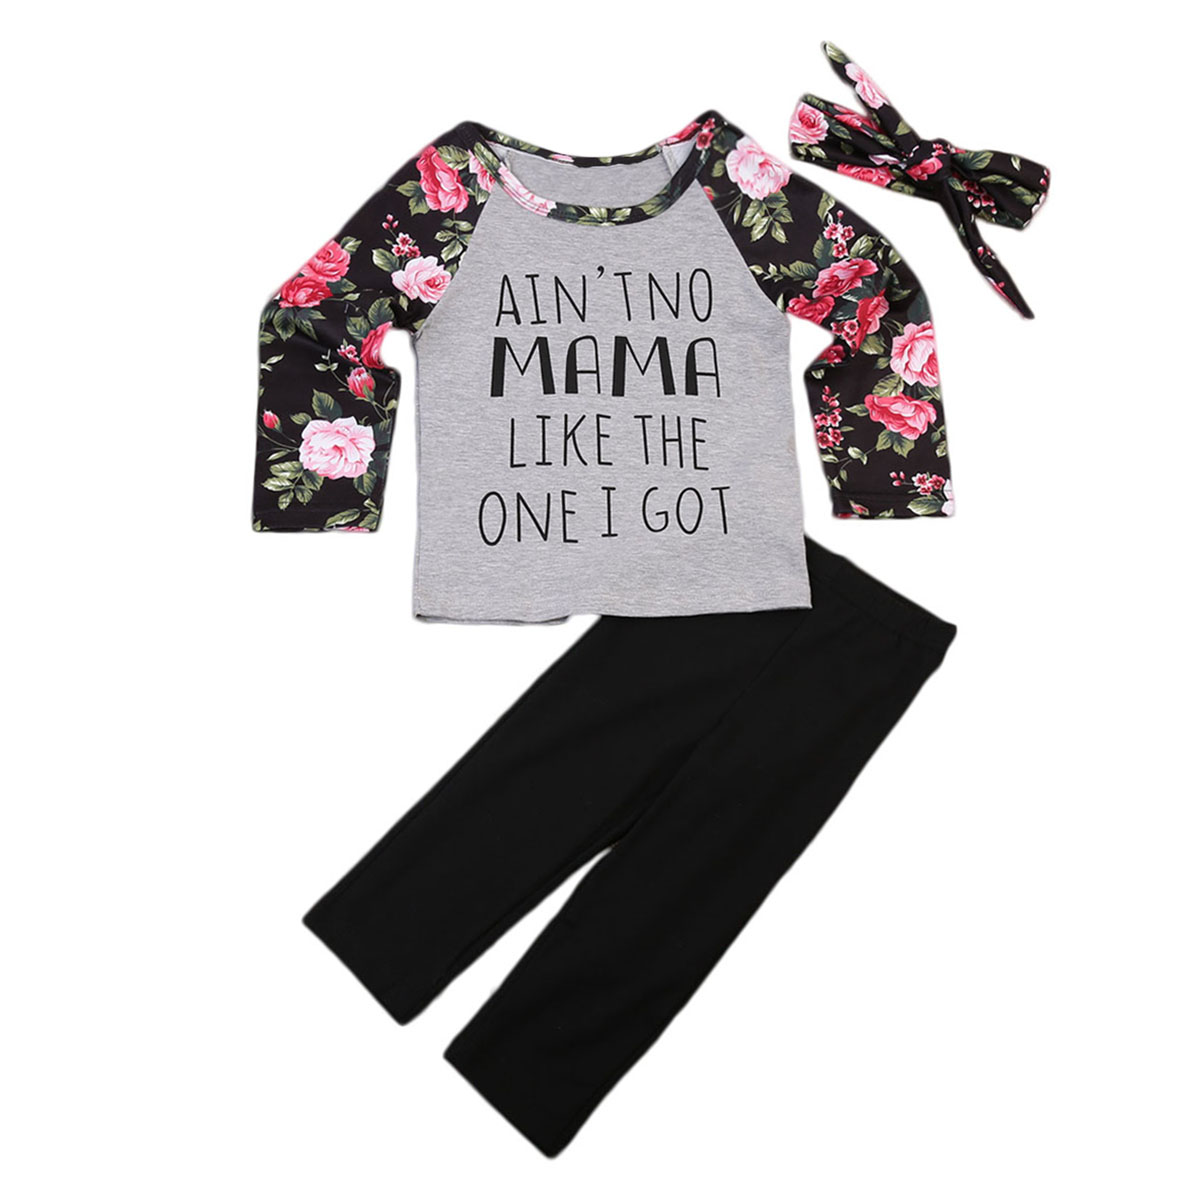 Little Girls Letter Floral Clothing Set Toddler Kids Baby Girls Long Sleeve Outfit T-shirt Tops Pants+Headband 3 Pcs Clothes infant tops pants love pattern headband baby girl outfit set clothing 3pcs kid children baby girls clothes long sleeve